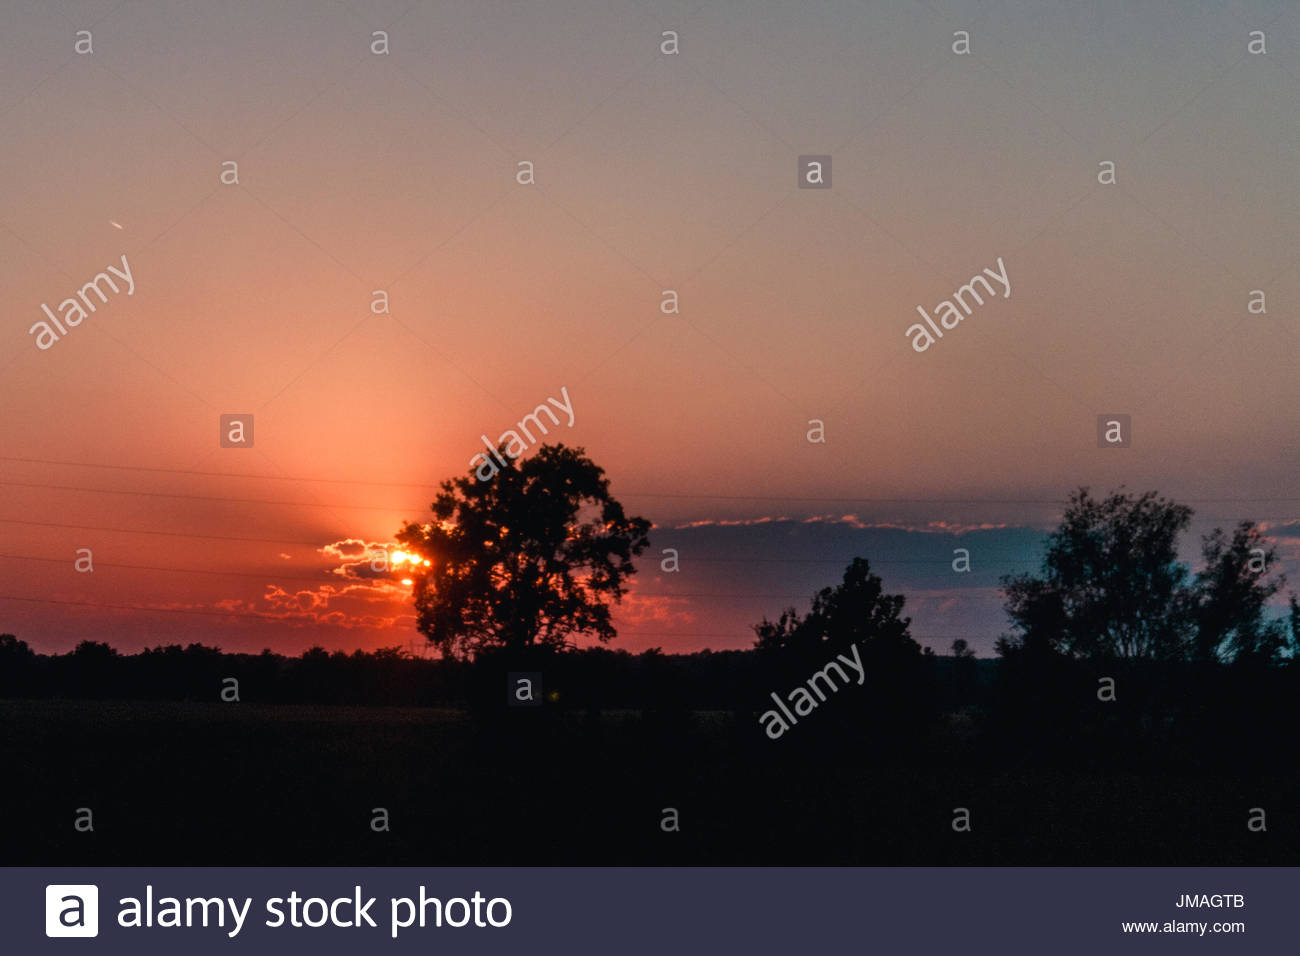 Sunset behind a cloud. - Stock Image